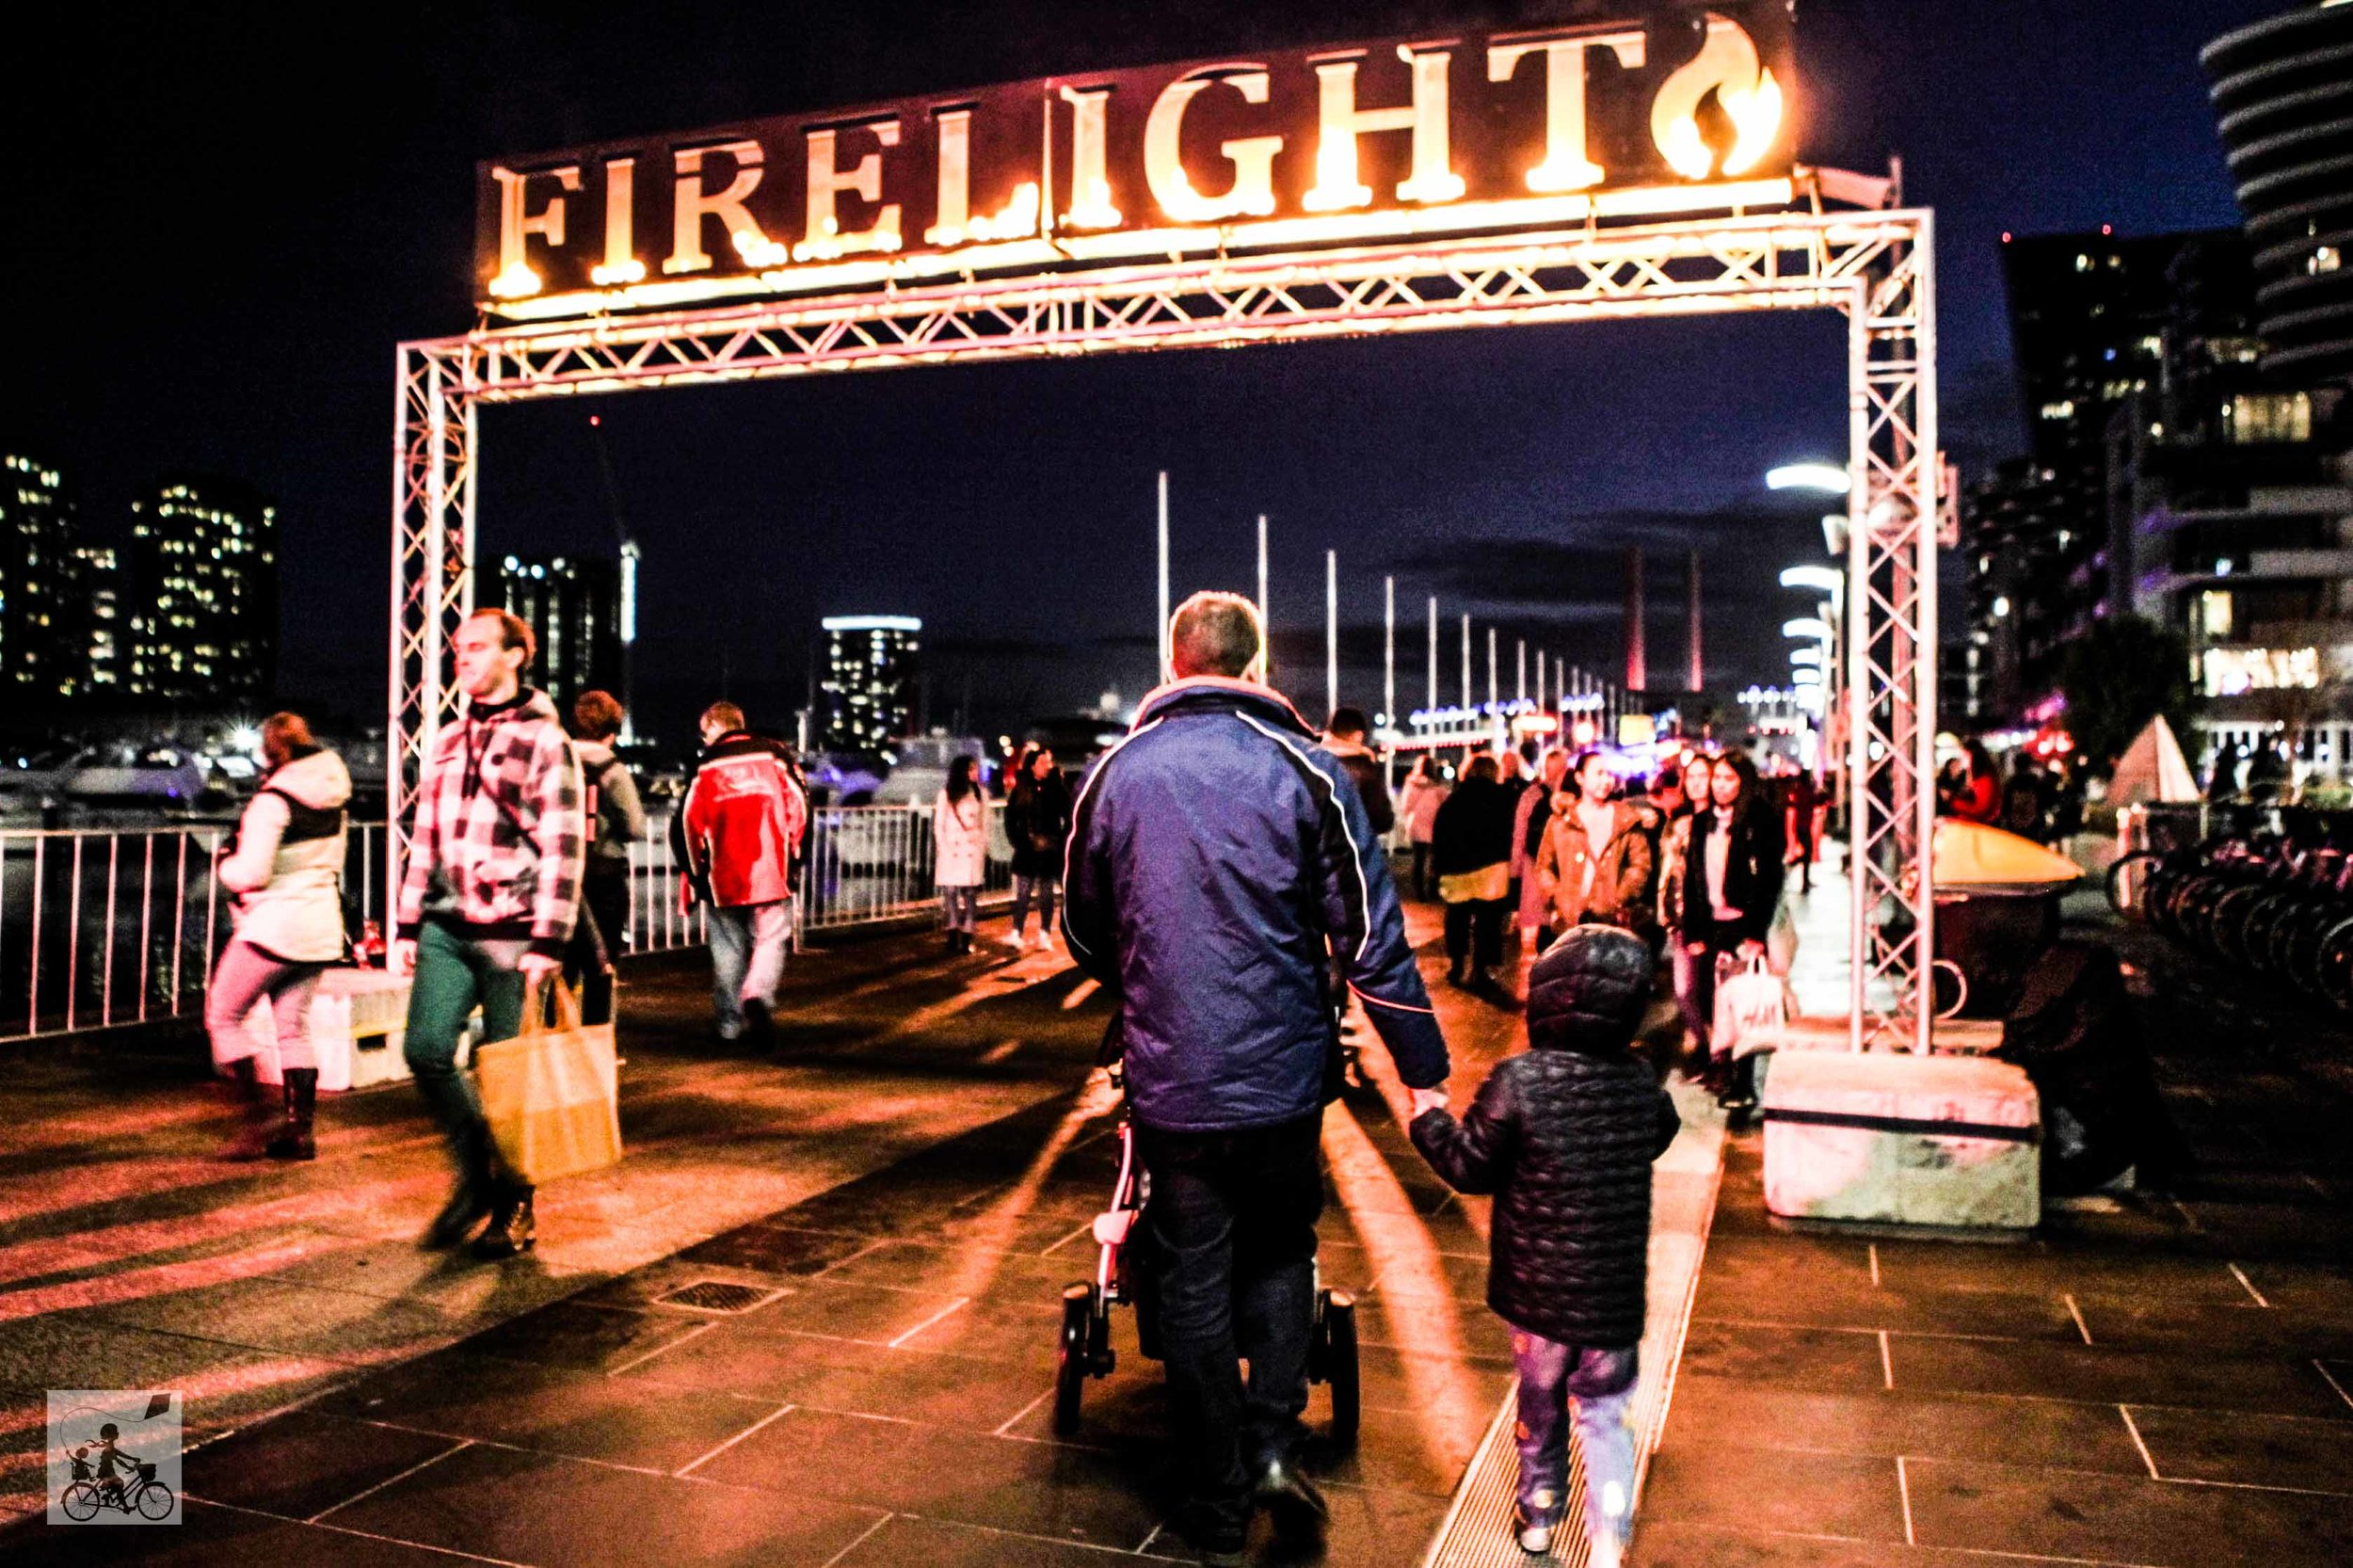 Firelight Festival @ Docklands